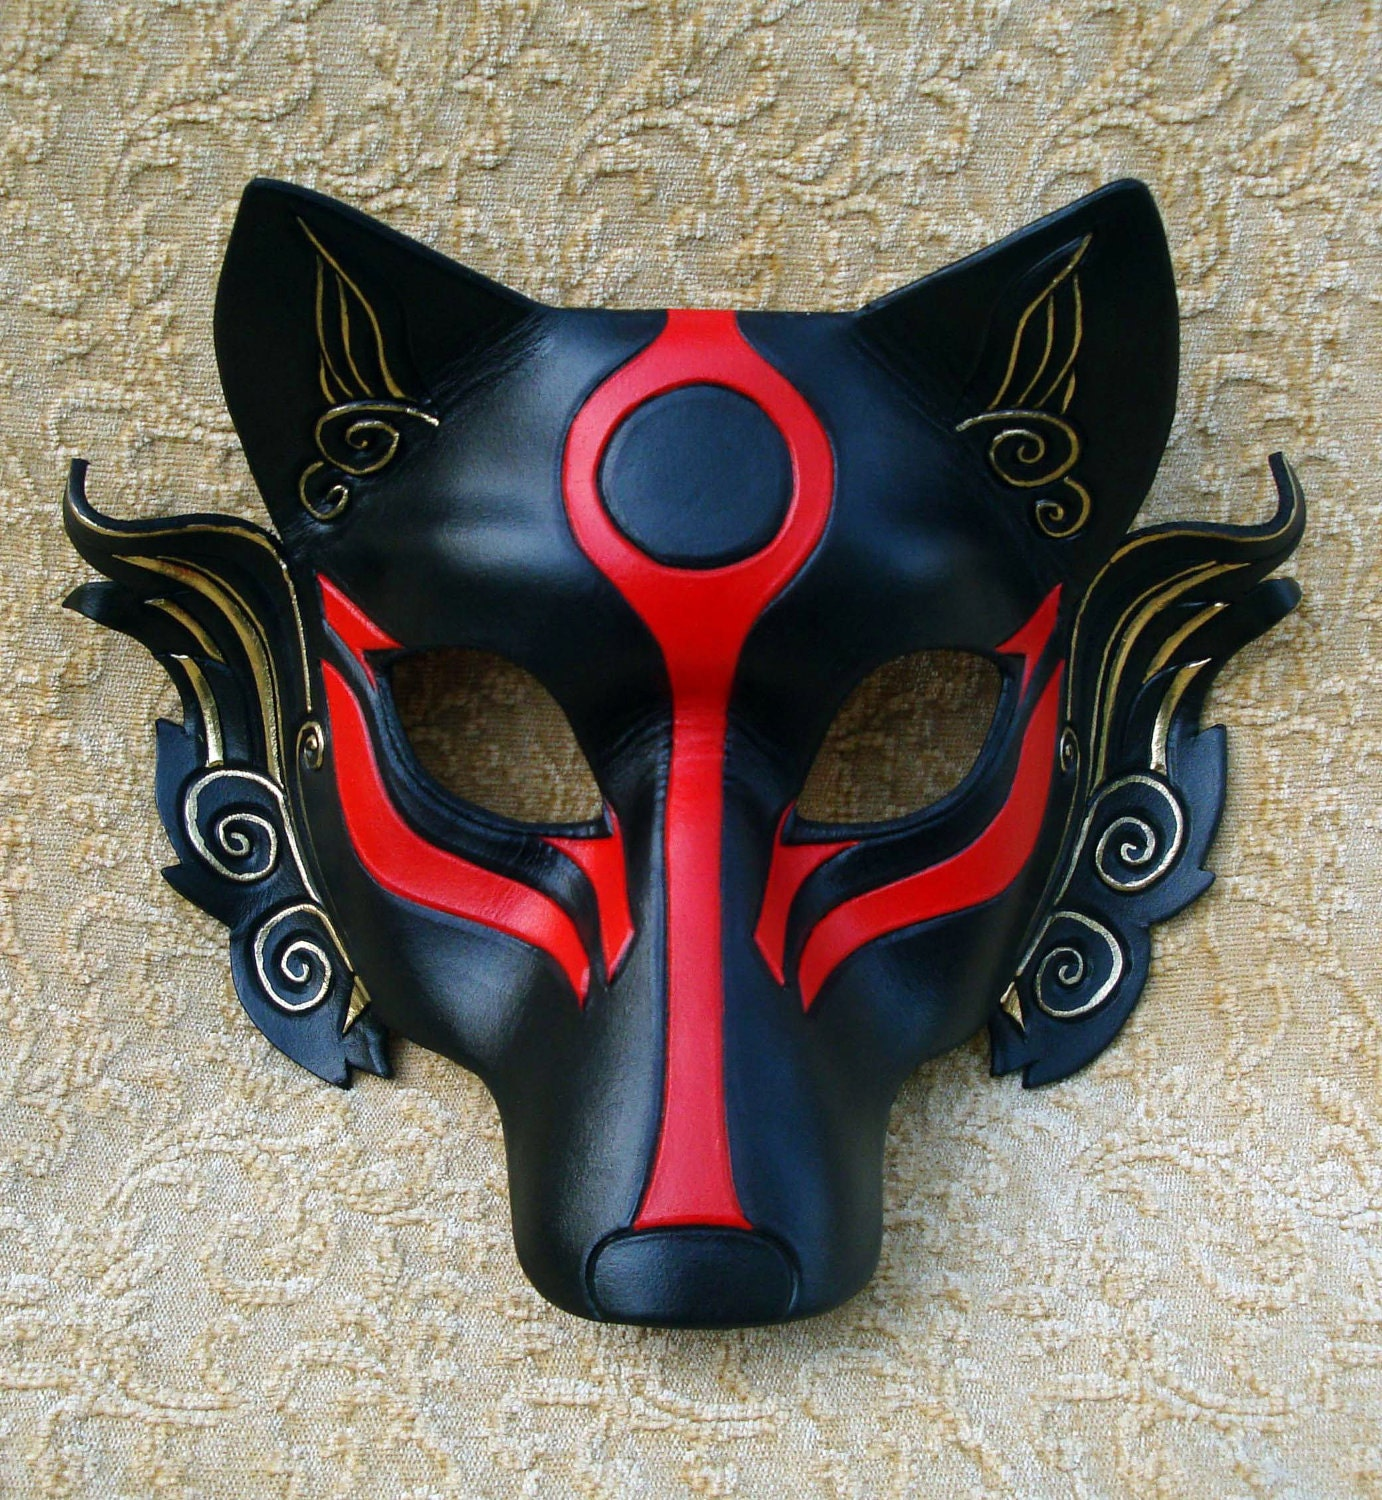 Japanese wolf mask - photo#8